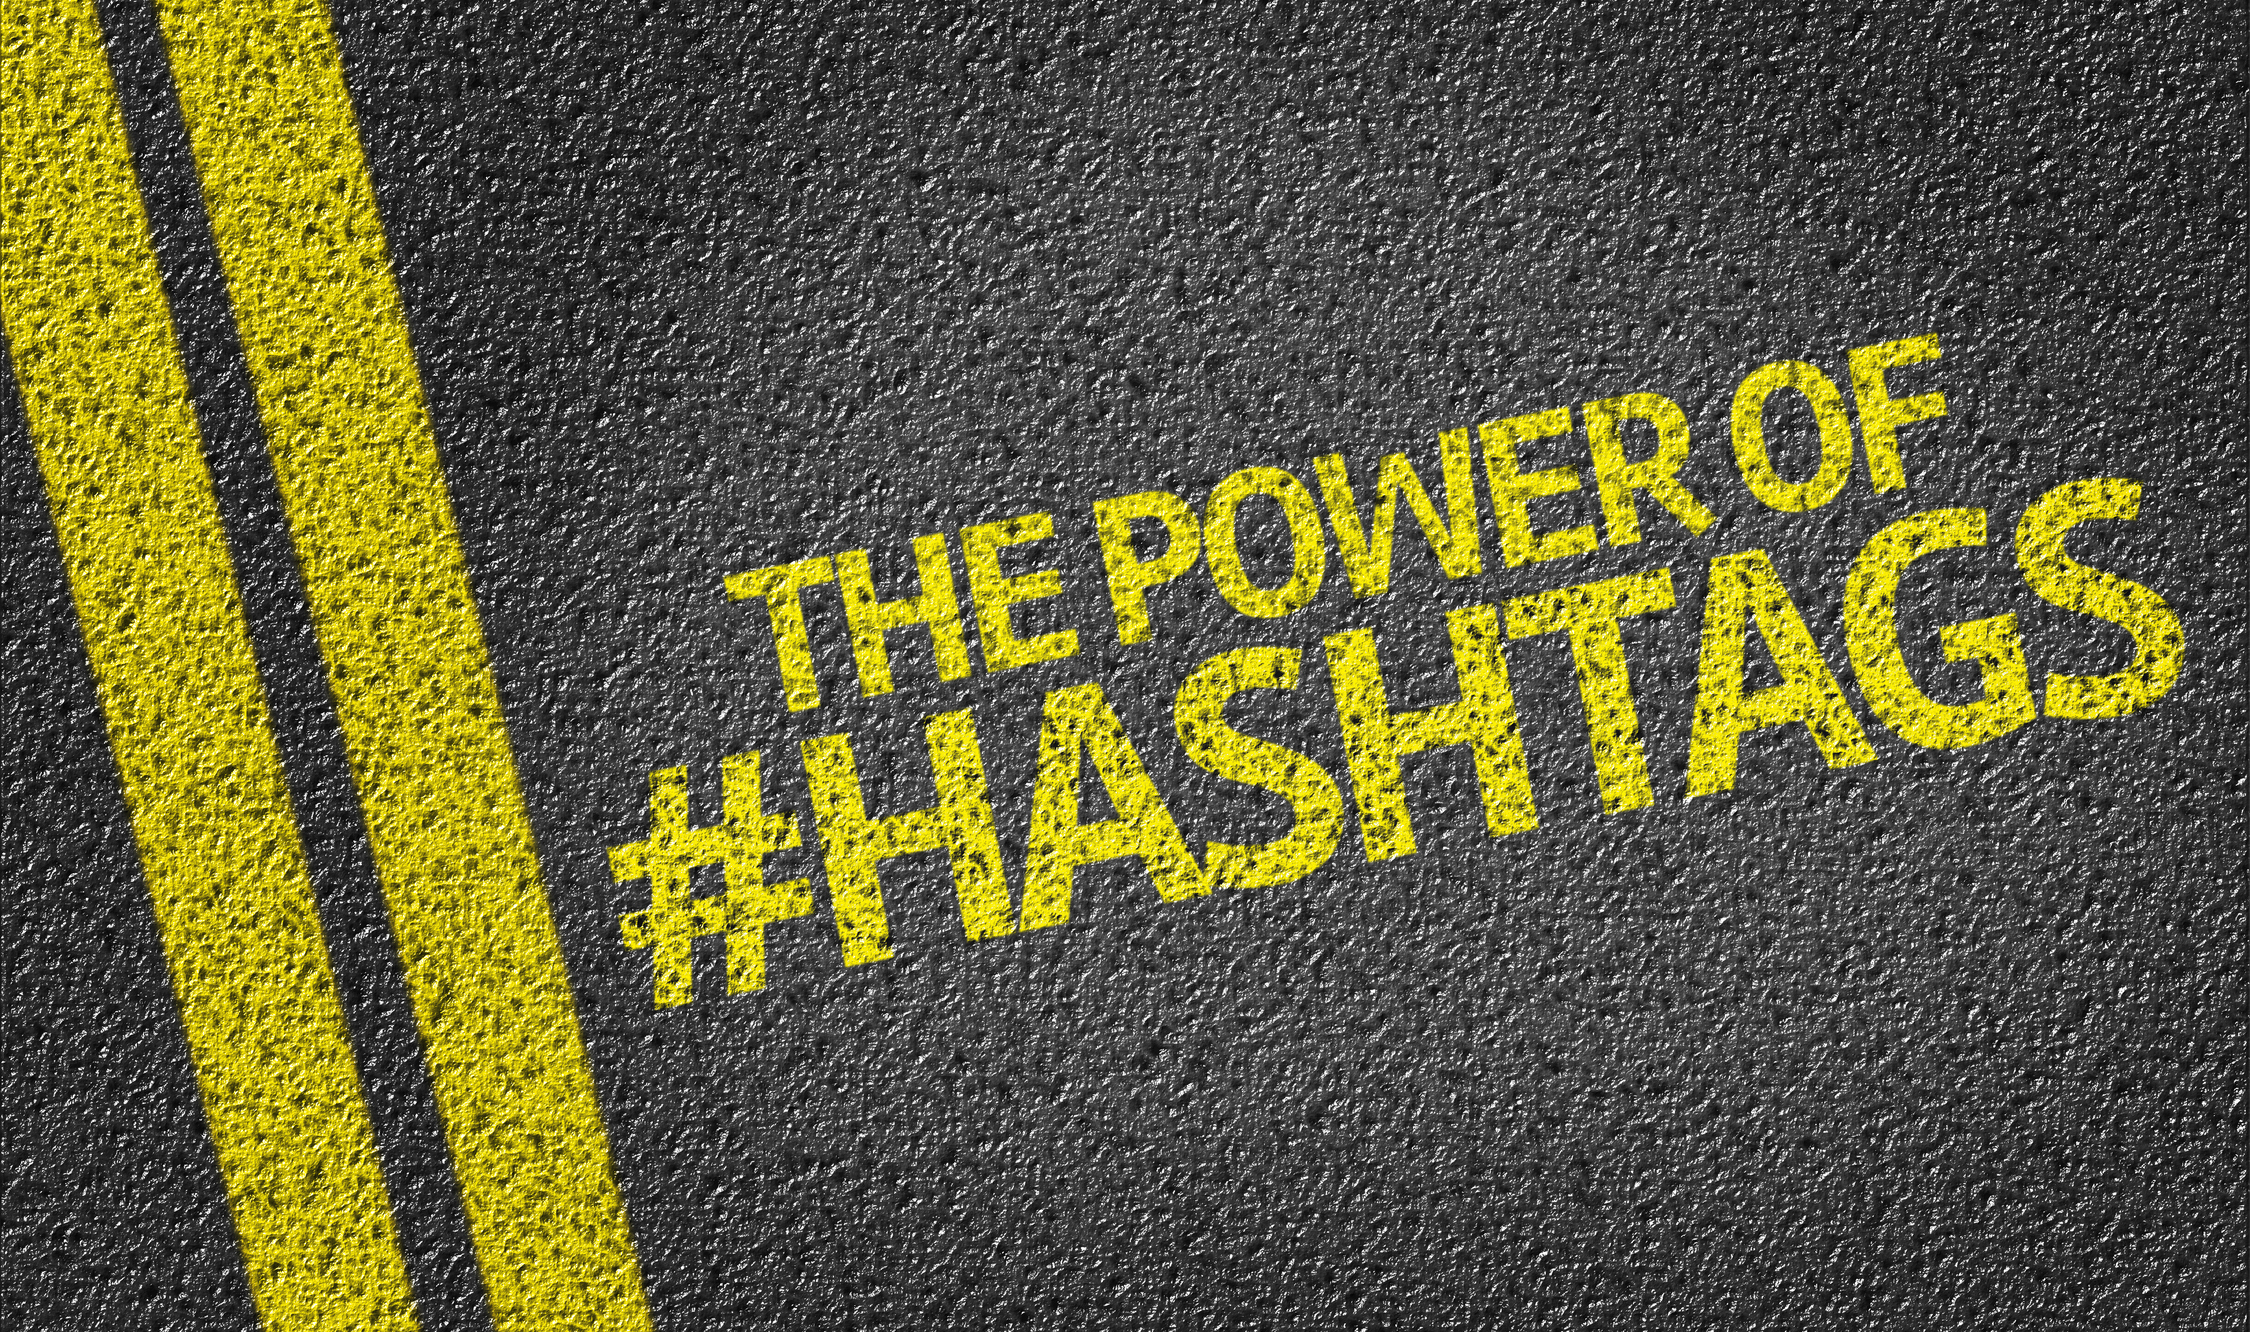 Using #Hashtags to Market Your Business